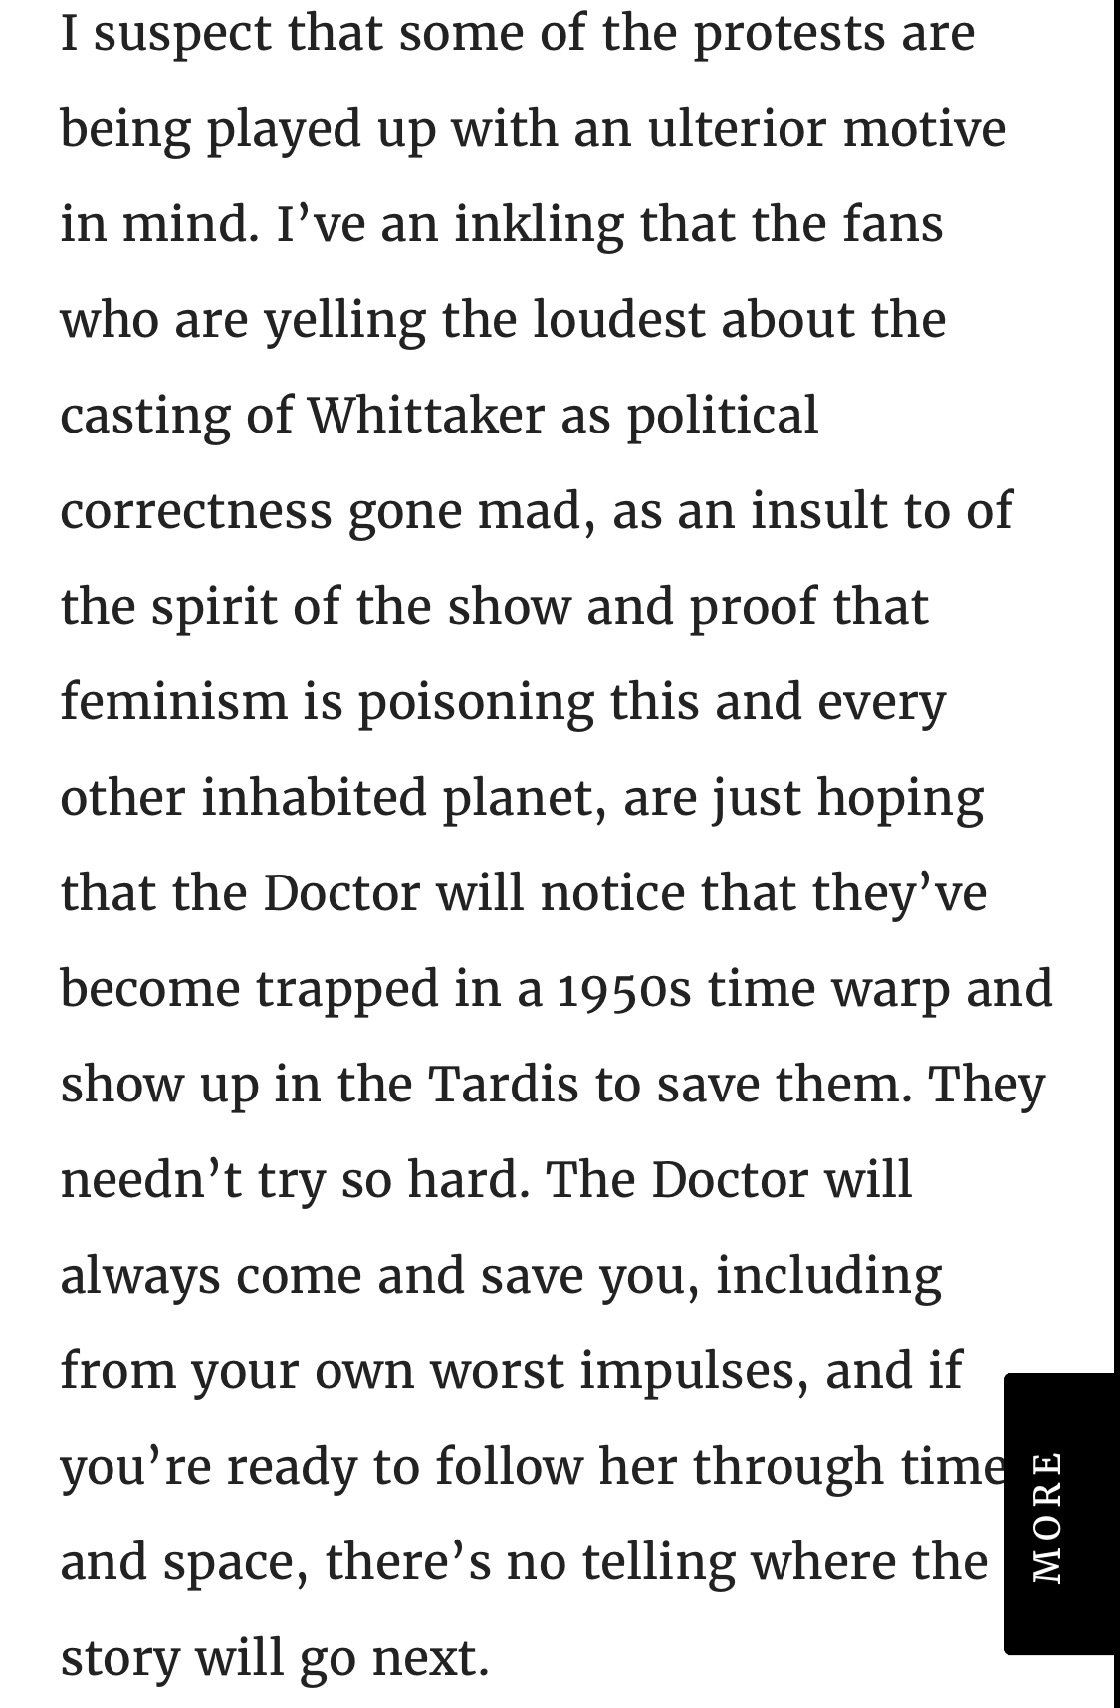 On the casting of the new Doctor: https://t.co/scNruitwp2 #jodiewhittaker #doctorwho13 https://t.co/VfEMUcpzYt